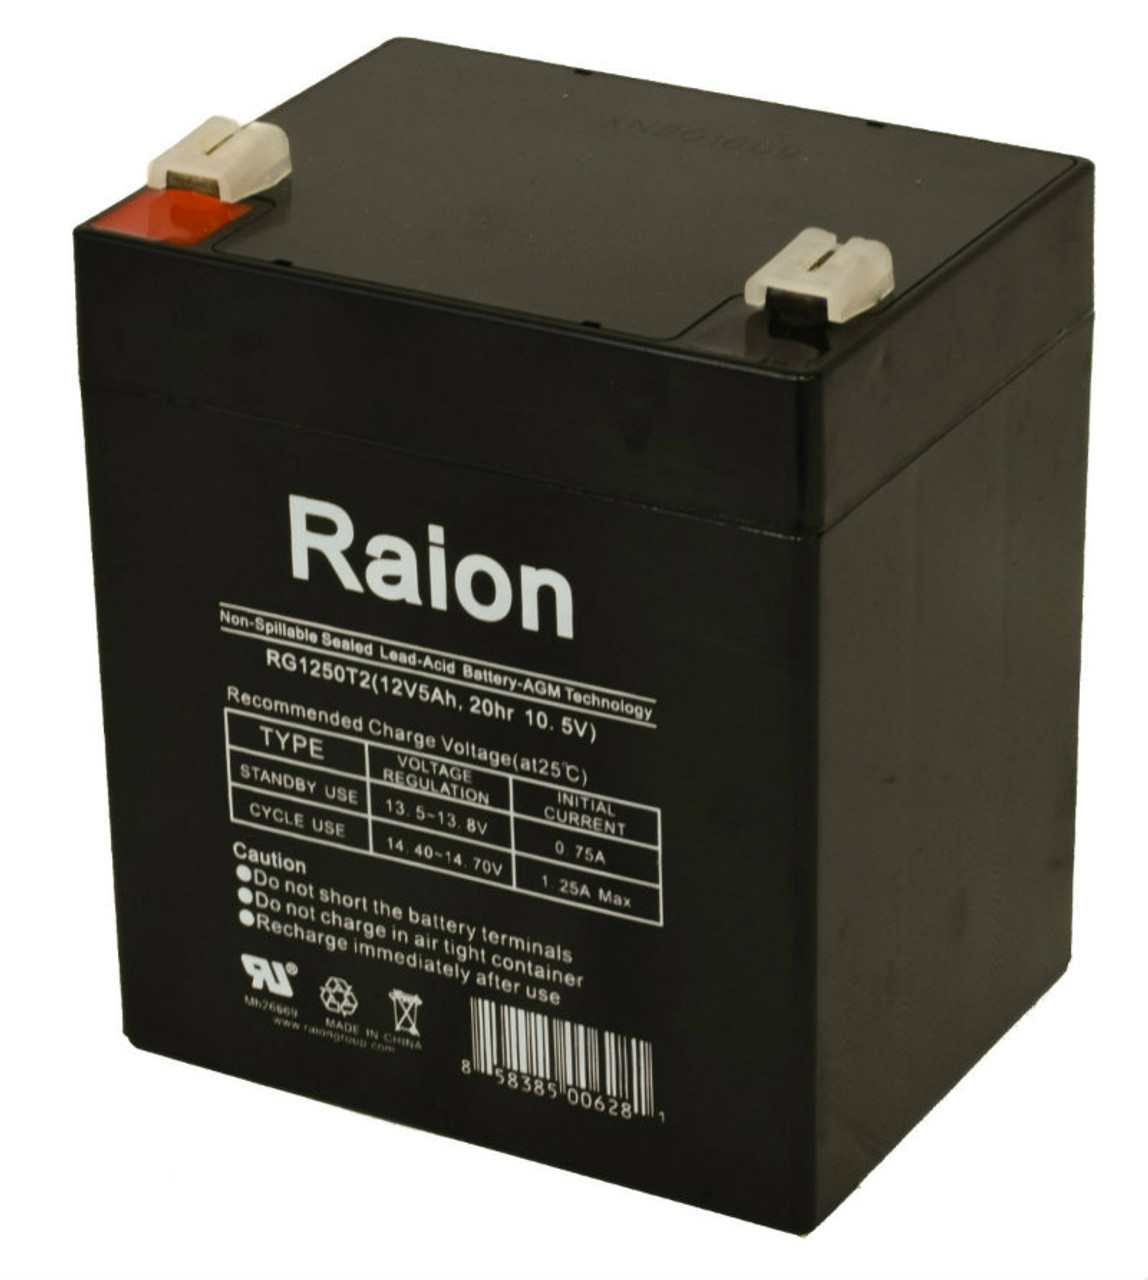 Raion Power RG1250T1 Replacement Battery for Panasonic LCR12V5P